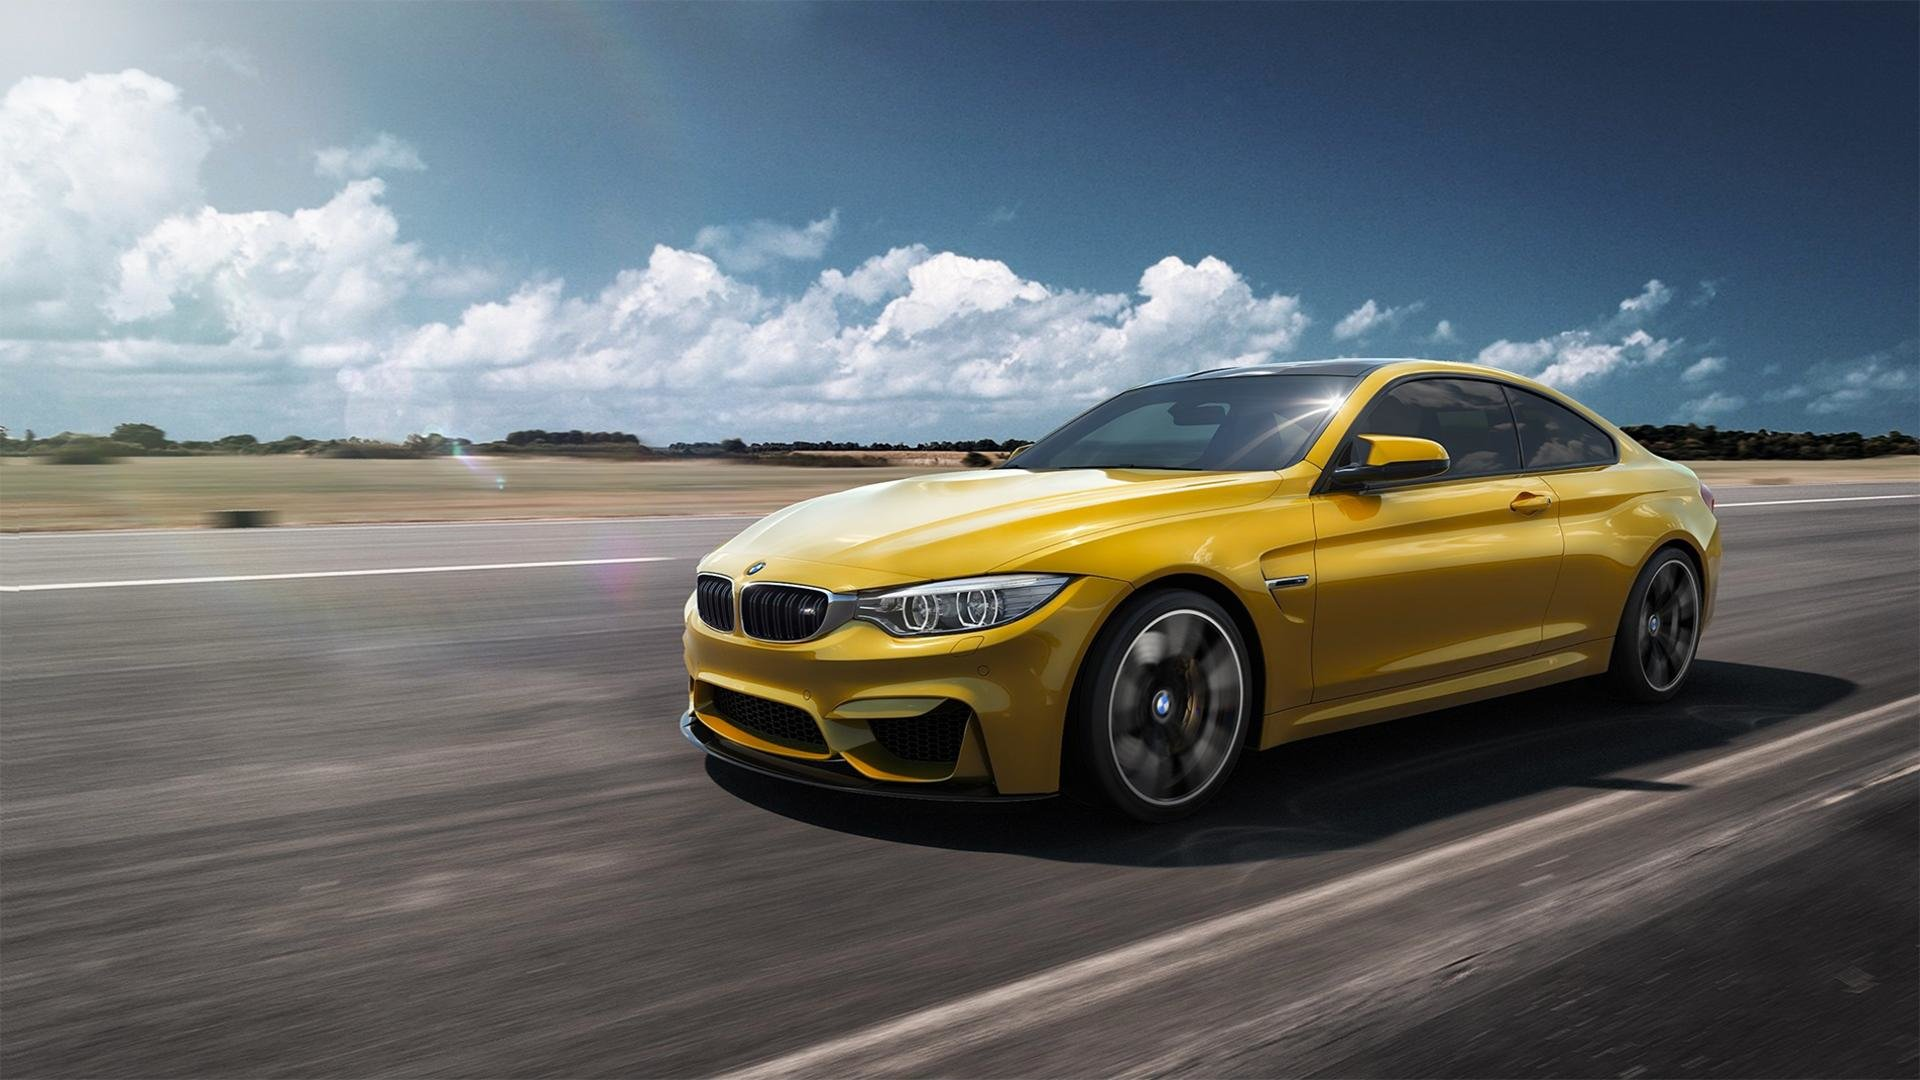 Bmw M4 Wallpapers 1920x1080 Full Hd 1080p Desktop Backgrounds